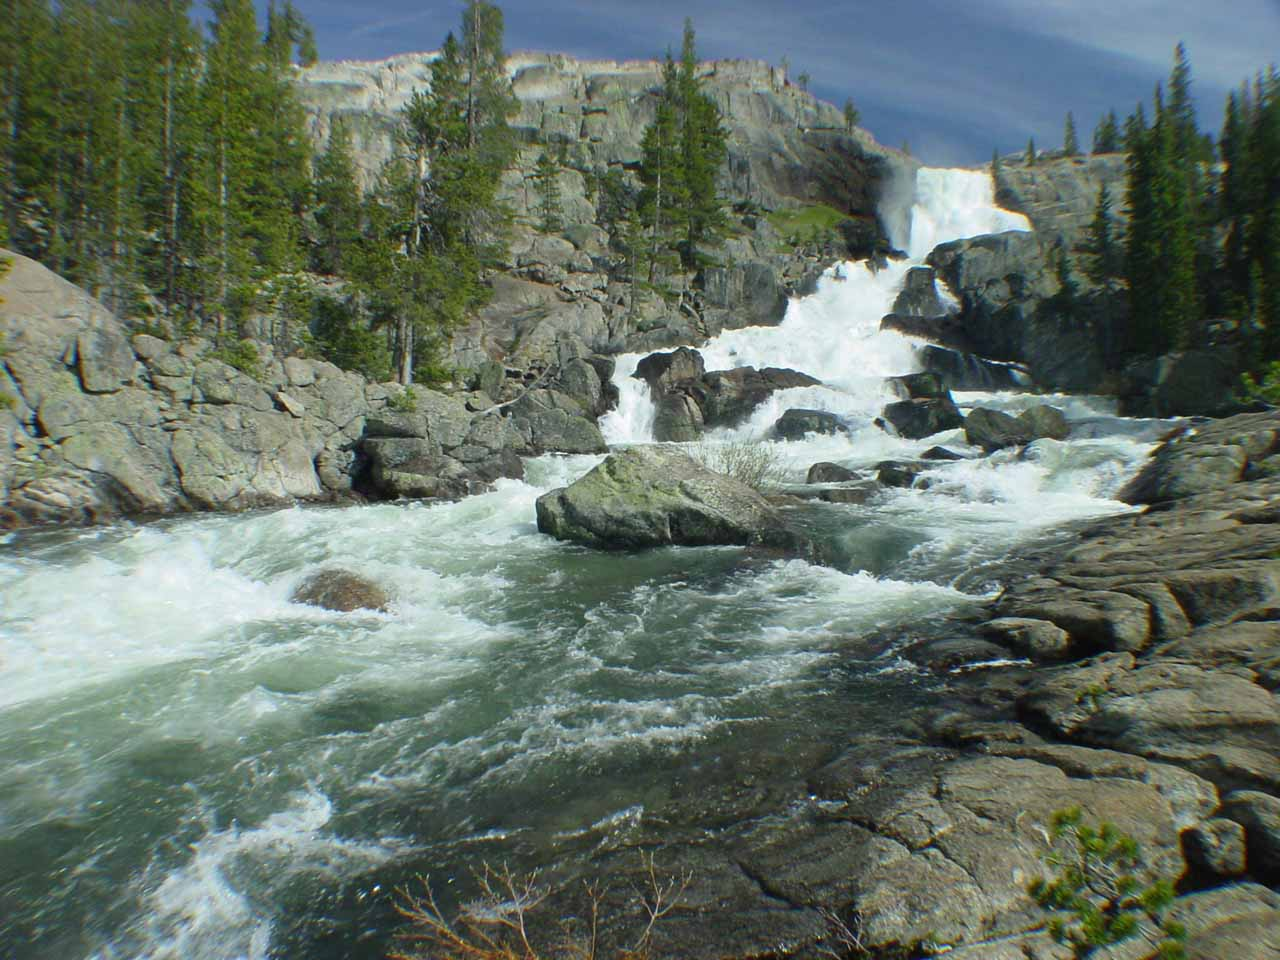 Looking up towards Tuolumne Falls from further downstream